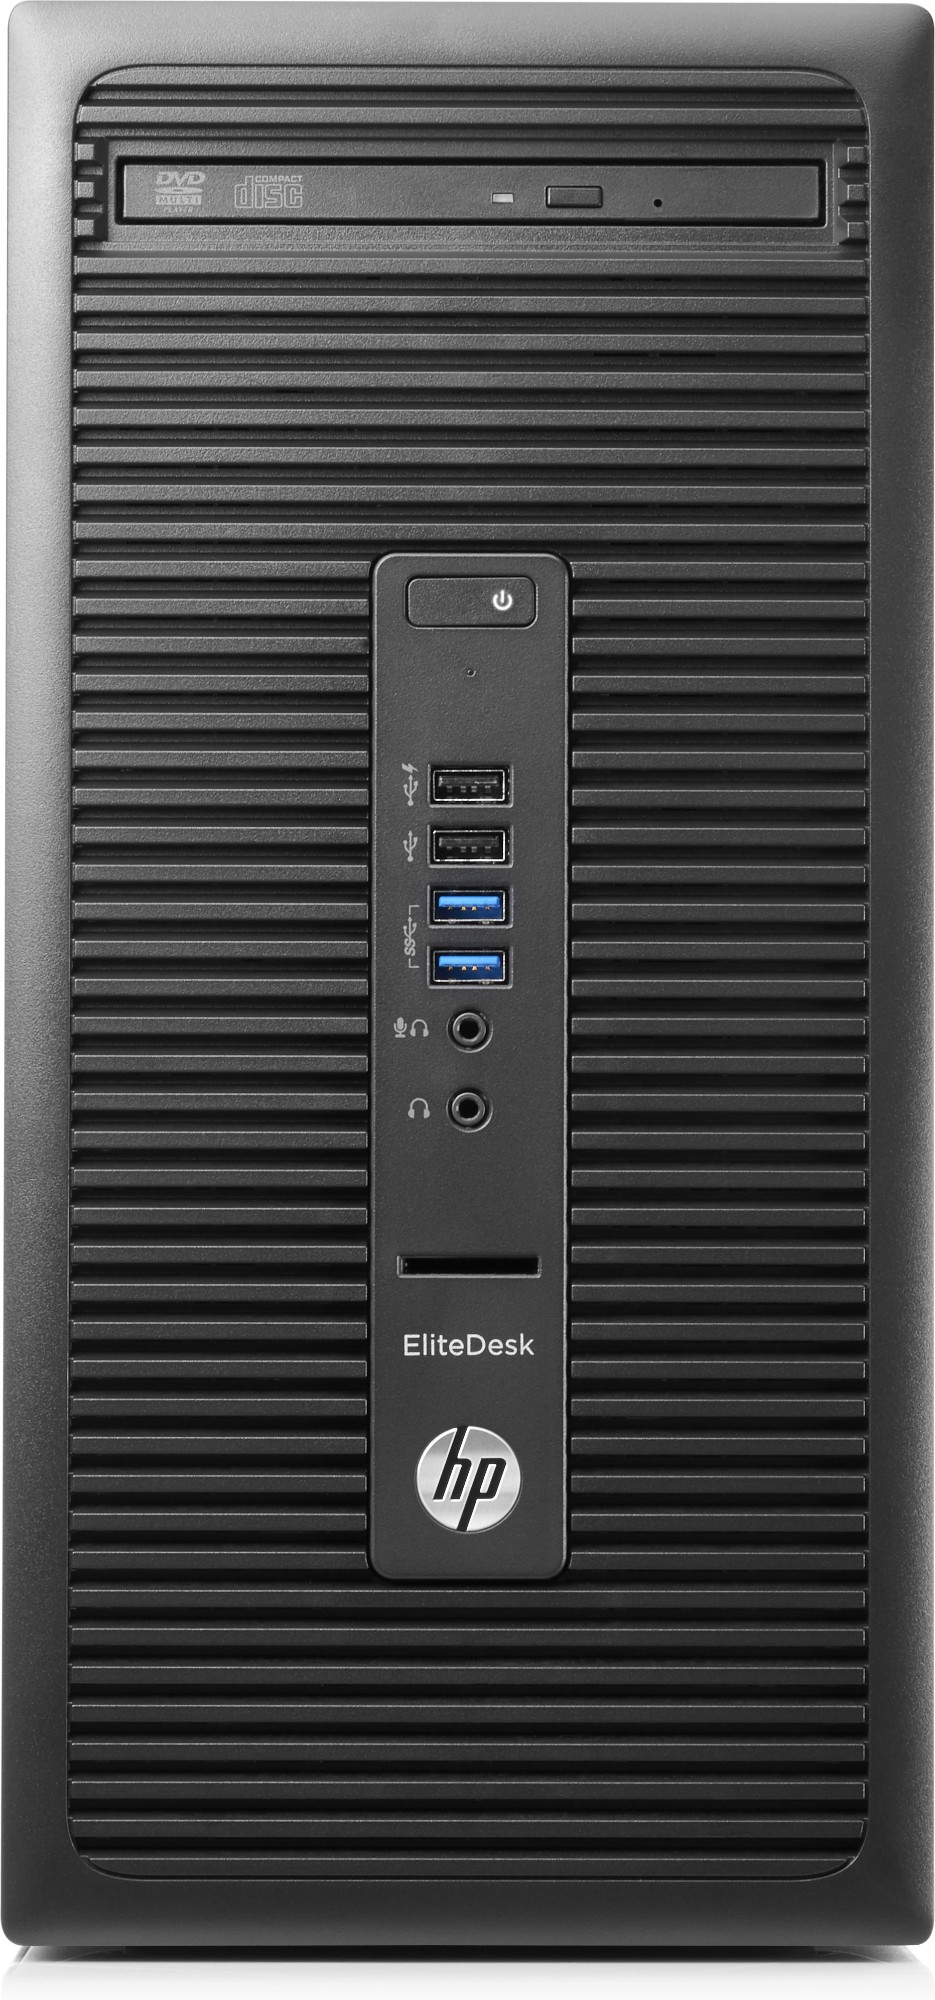 HP EliteDesk 705 G3 AMD Ryzen 3 PRO 1200 8 GB DDR4-SDRAM 256 GB SSD Black Micro Tower PC